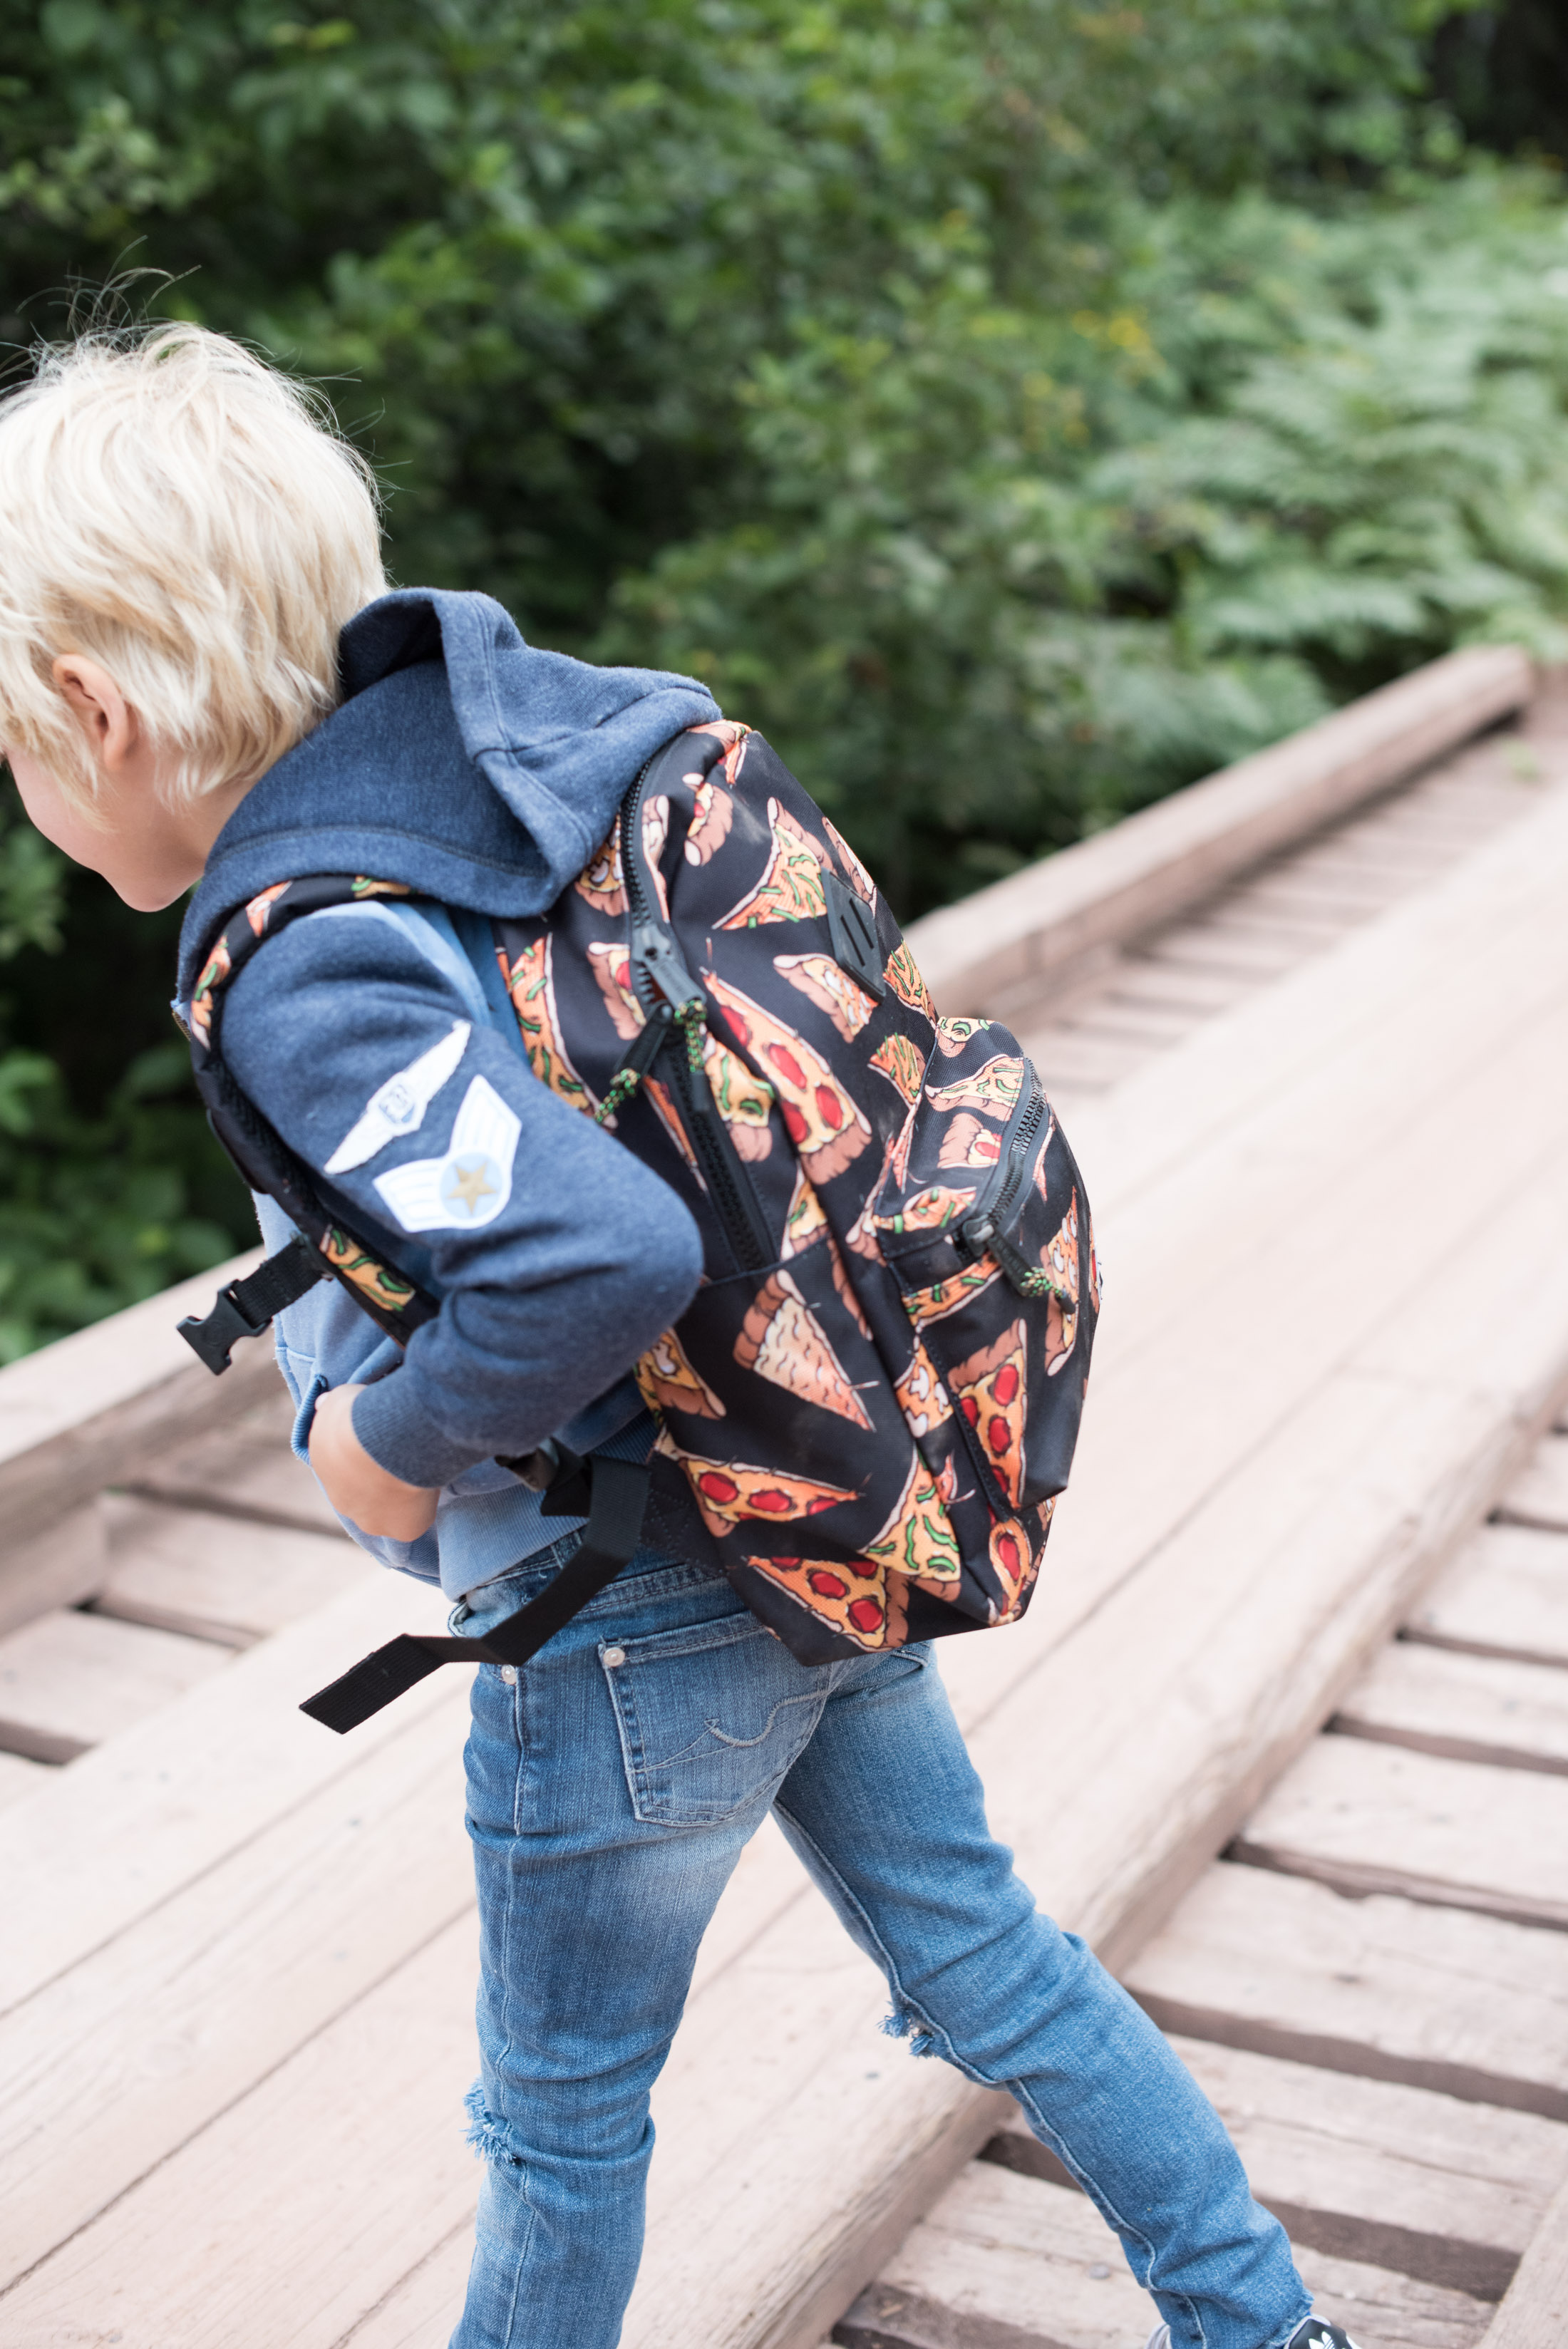 coolest backpacks for kids